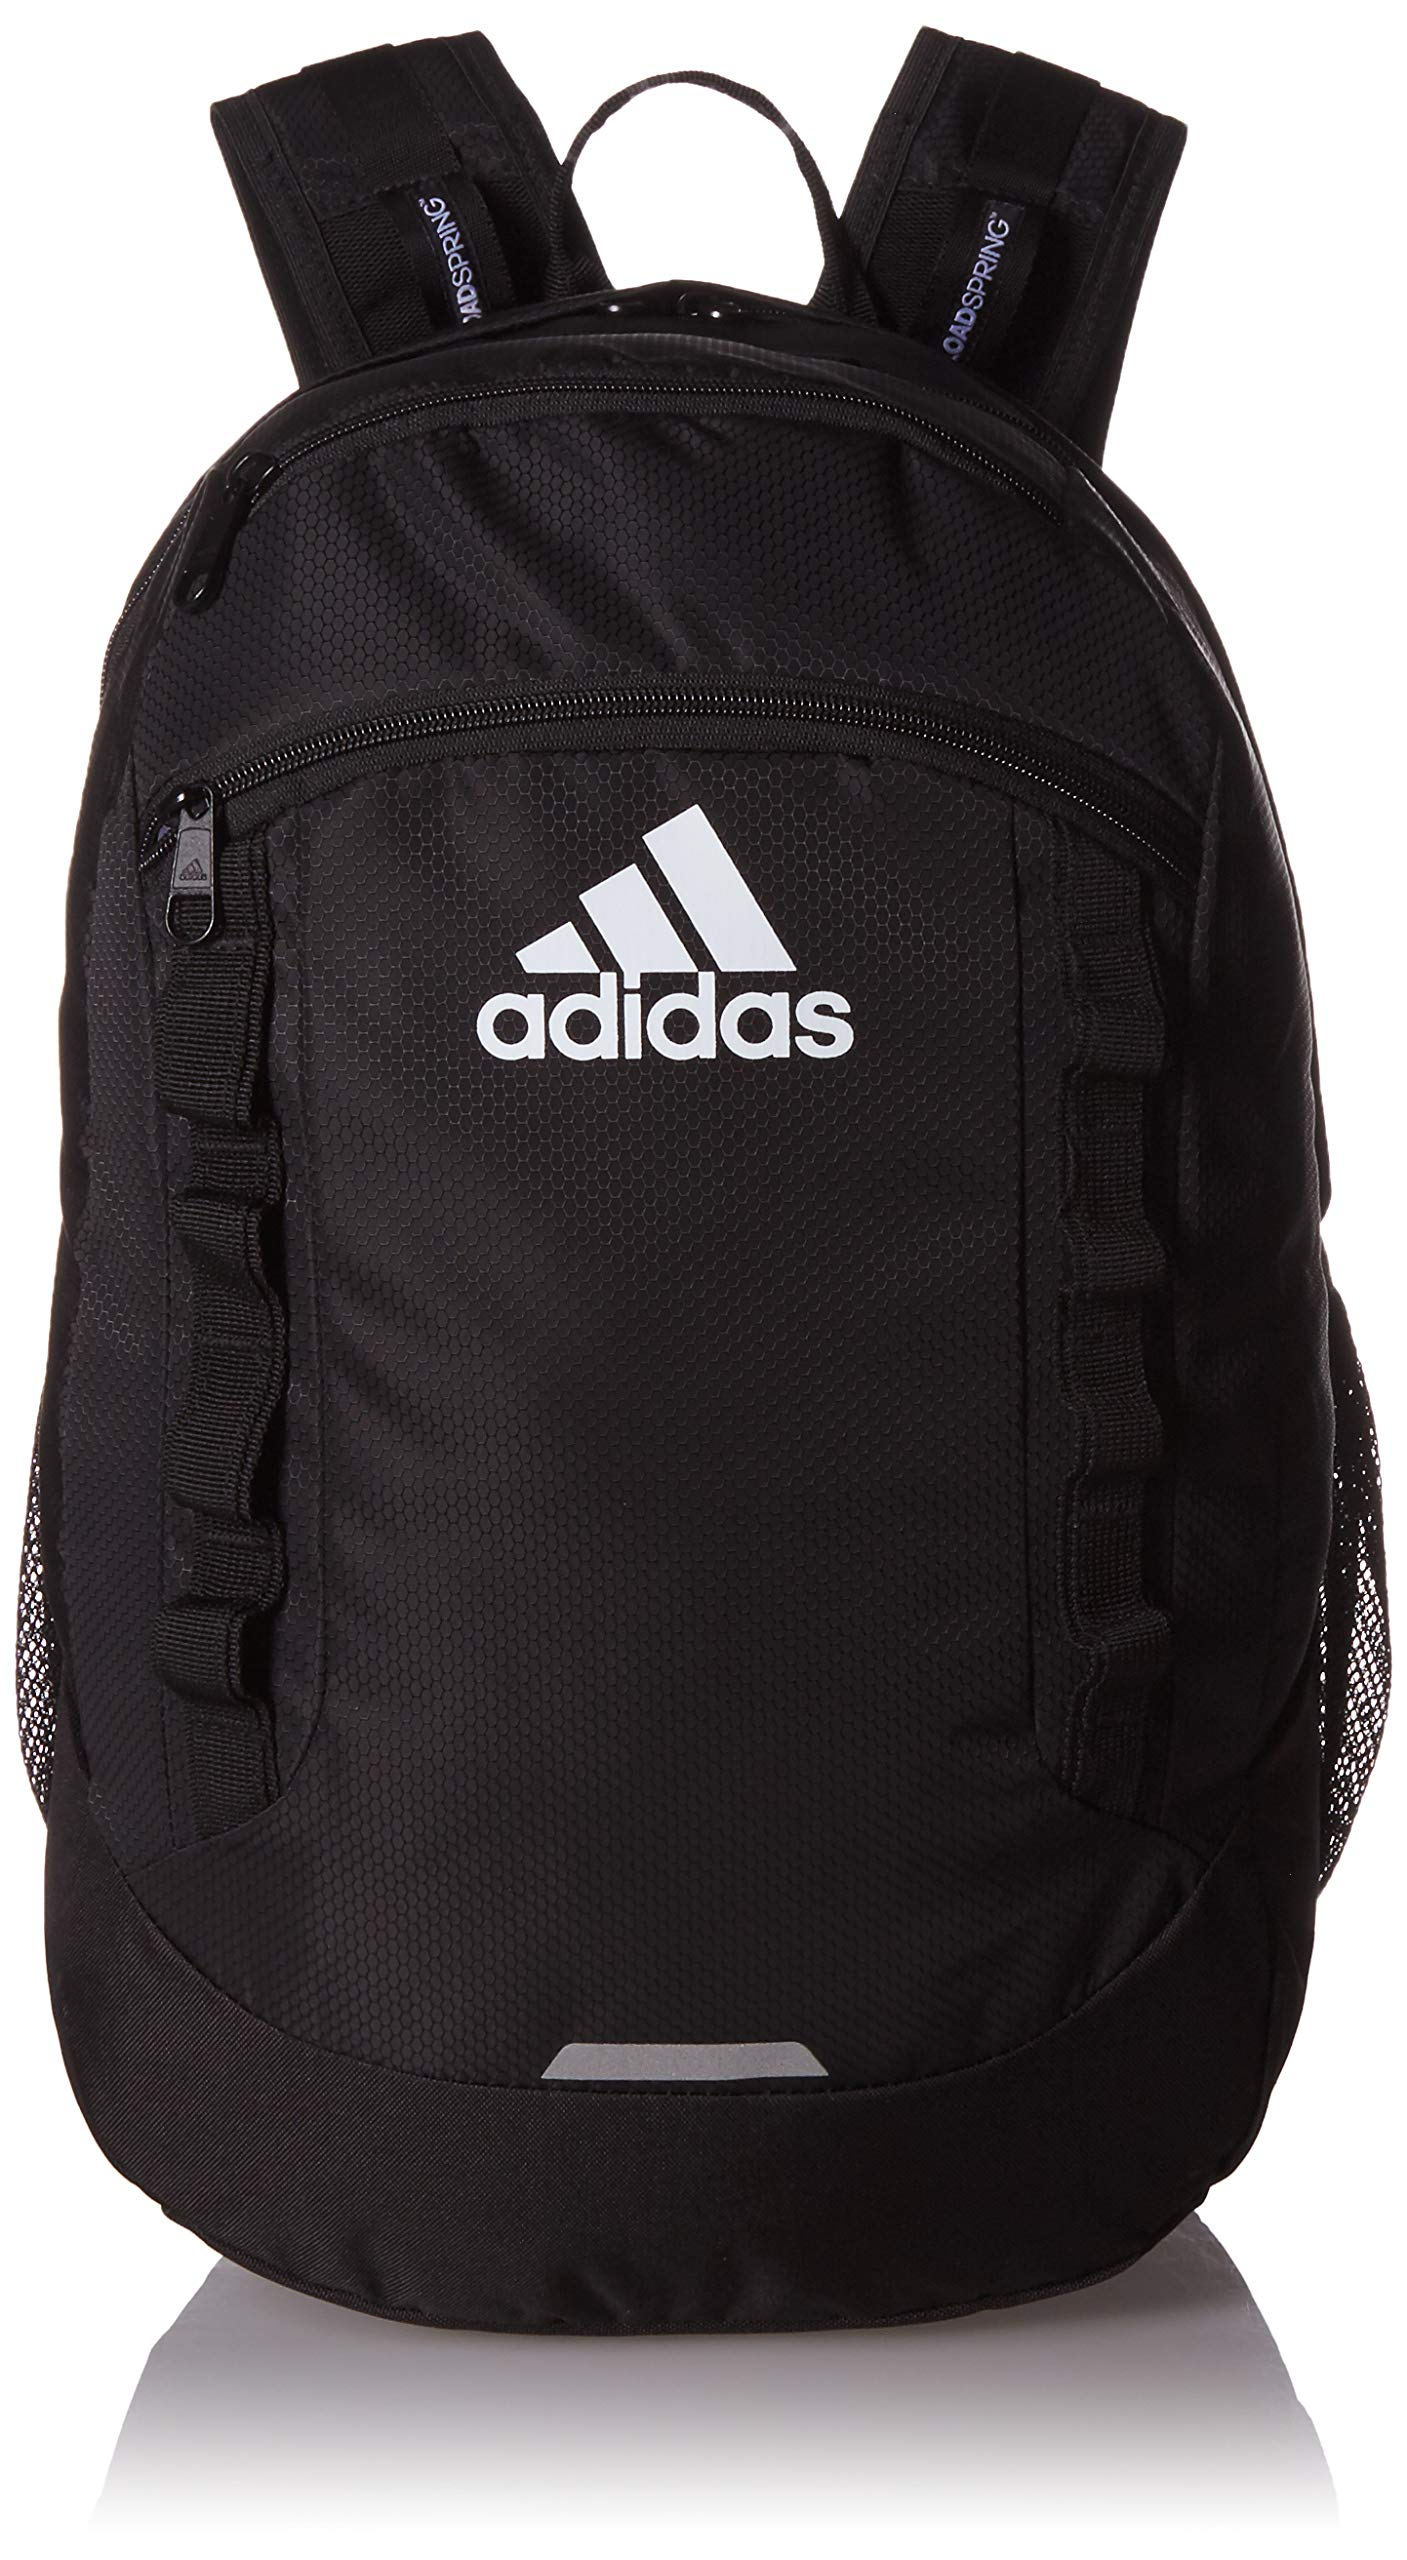 adidas Excel Backpack Black/White, One Size